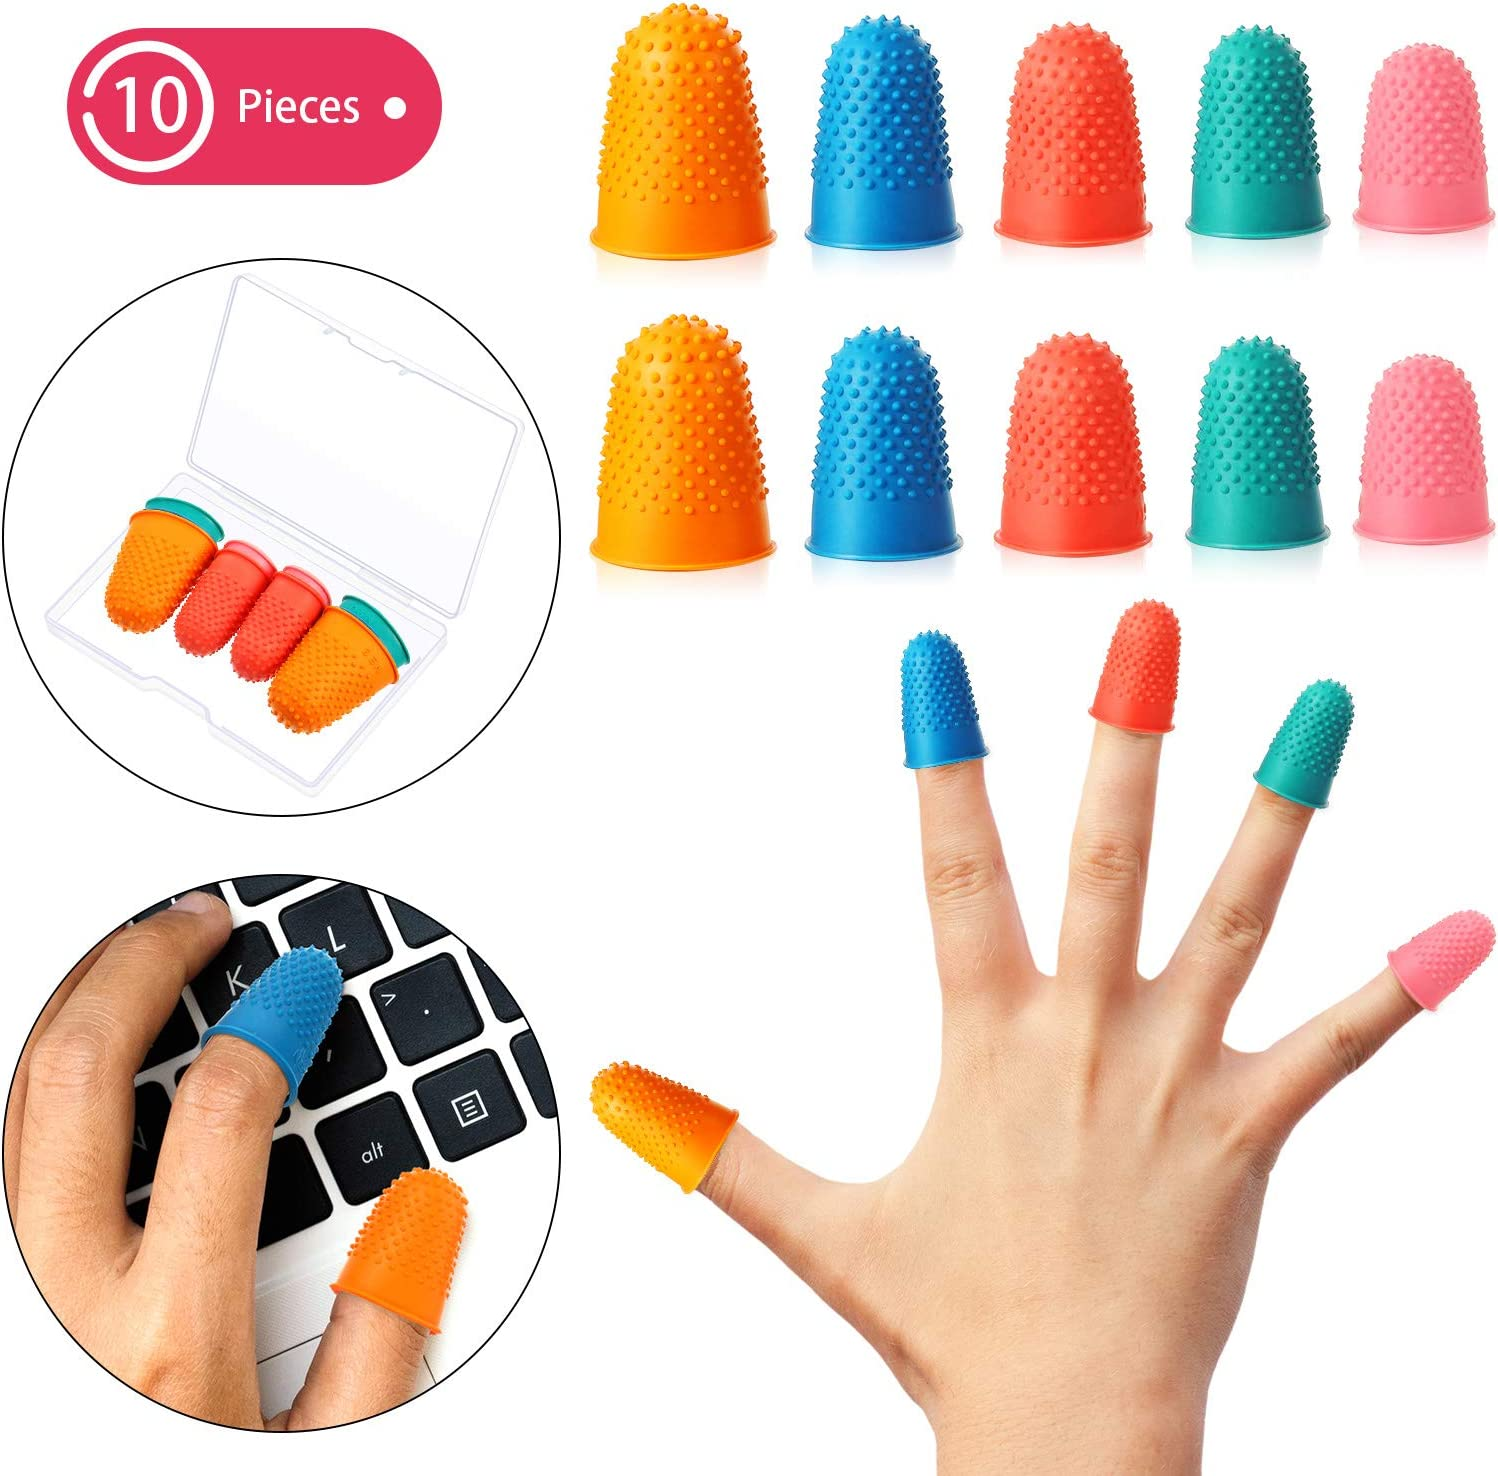 10 Pieces Rubber Finger Tips Finger Pads Grips Thick Reusable Finger Protector Fingertip Grips with a Box for Money Counting Collating Writing Sorting Task Hot Glue Sport Games in 5 Sizes and Colors